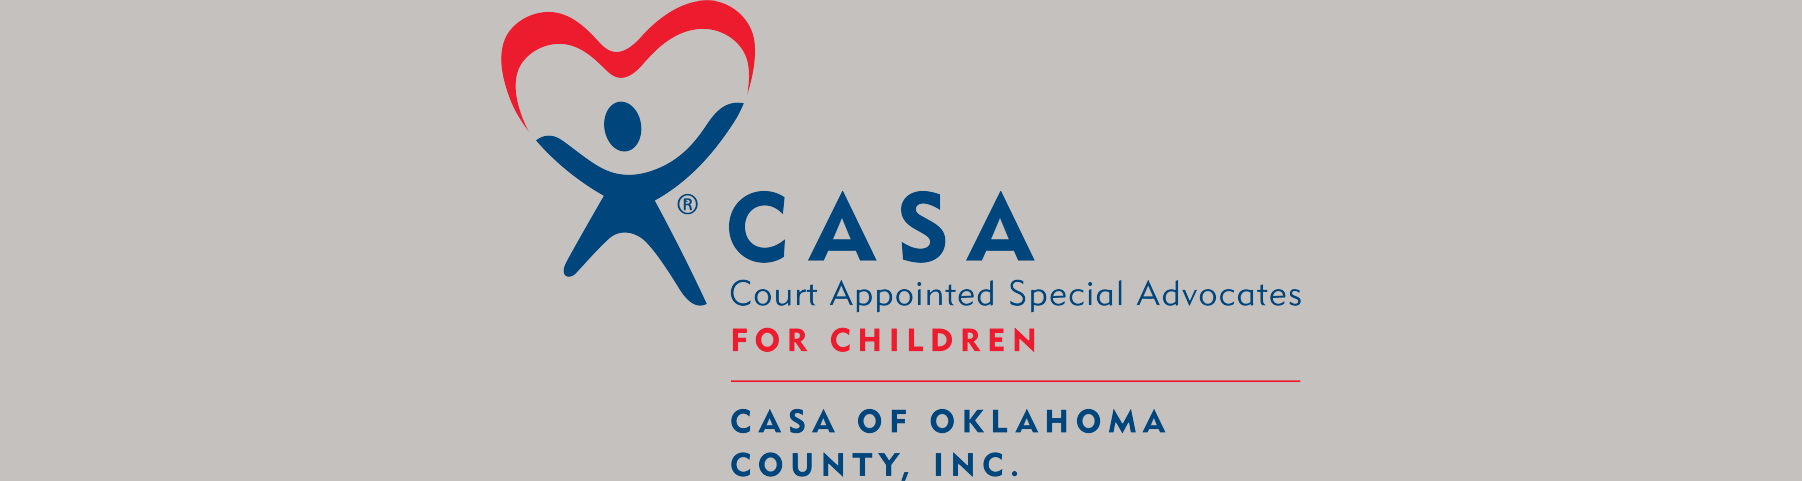 CASA provides a trained caring adult to advocate for the best interest of children who have been removed from their home due to abuse or neglect. CASA volunteers get to know the children and communicate with all parties in the case and people in the child's life in order to provide complete information and sound recommendations to the court.